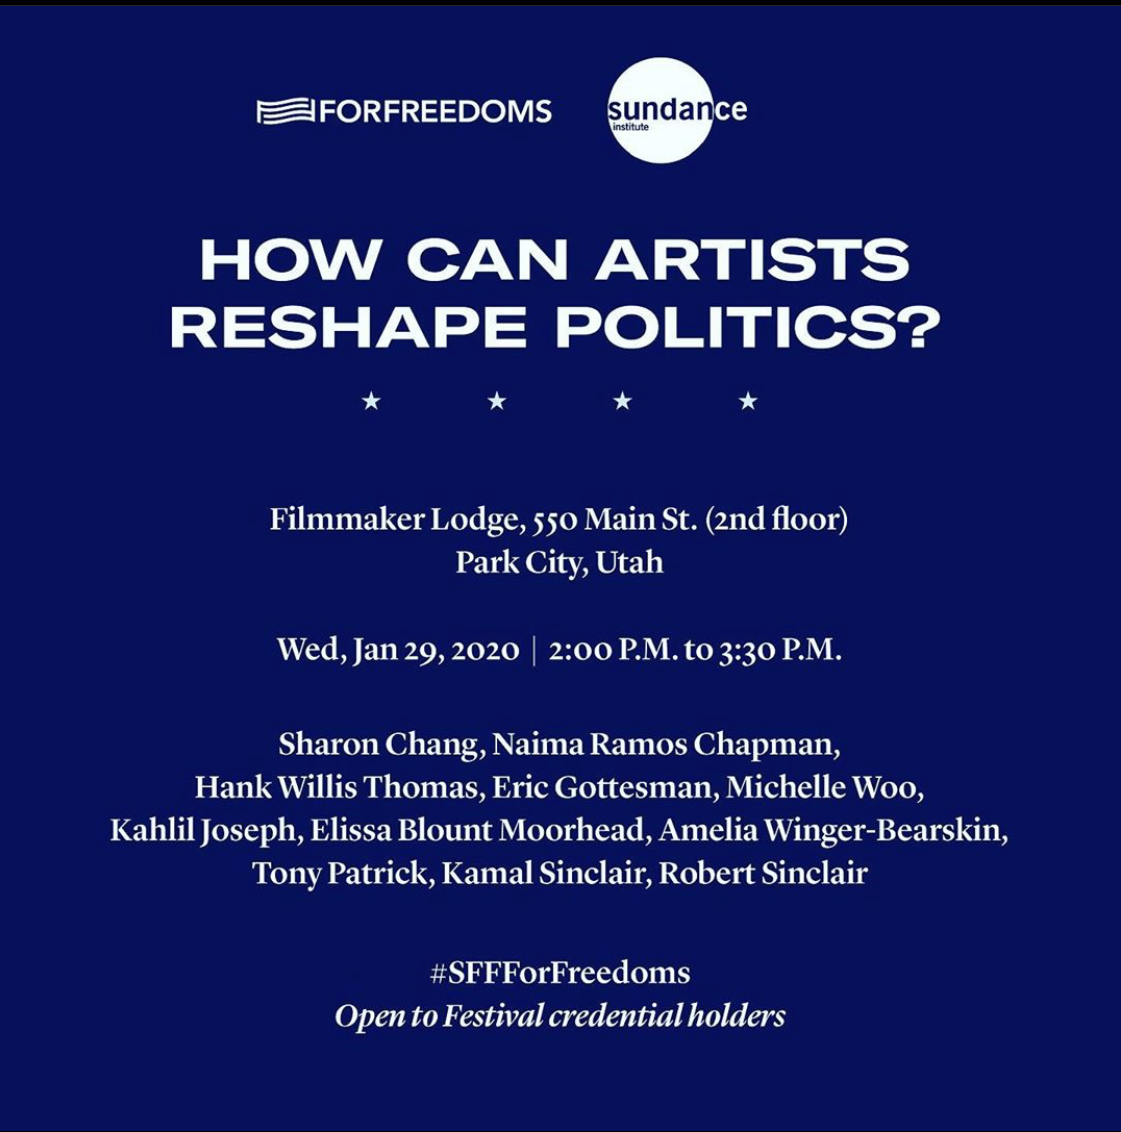 """A graphic promoting the """"How Can Artists Reshape Politics?"""" panel at Sundance Film Festival 2020. Panelists included: Amelia Winger-Bearskin, Hank Willis Thomas, Eric Gottesman, and Michelle Woo of For Freedoms; artists Kahlil Joseph (BLKNWS) and Elissa Blount Moorhead; and Tony Patrick and Robert Sinclair (Guild of Future Architects' Futurist Writers' Room)."""